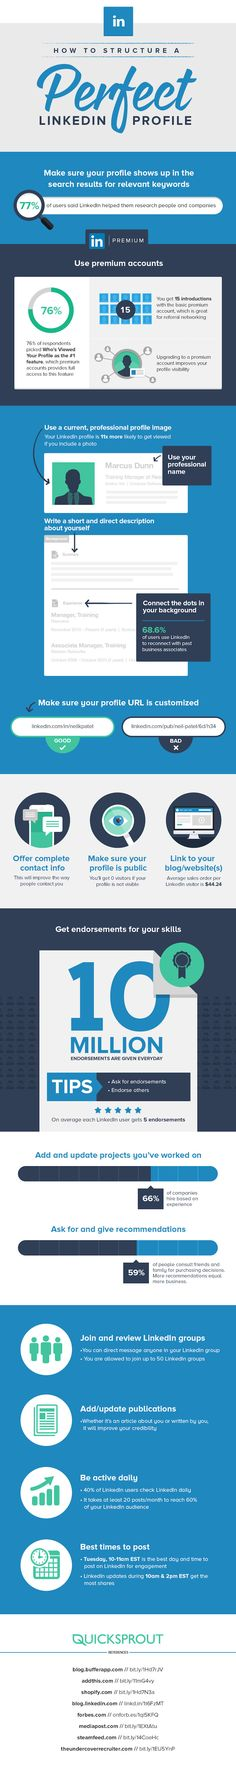 How to Structure a Perfect #LinkedIn Profile - #infographic